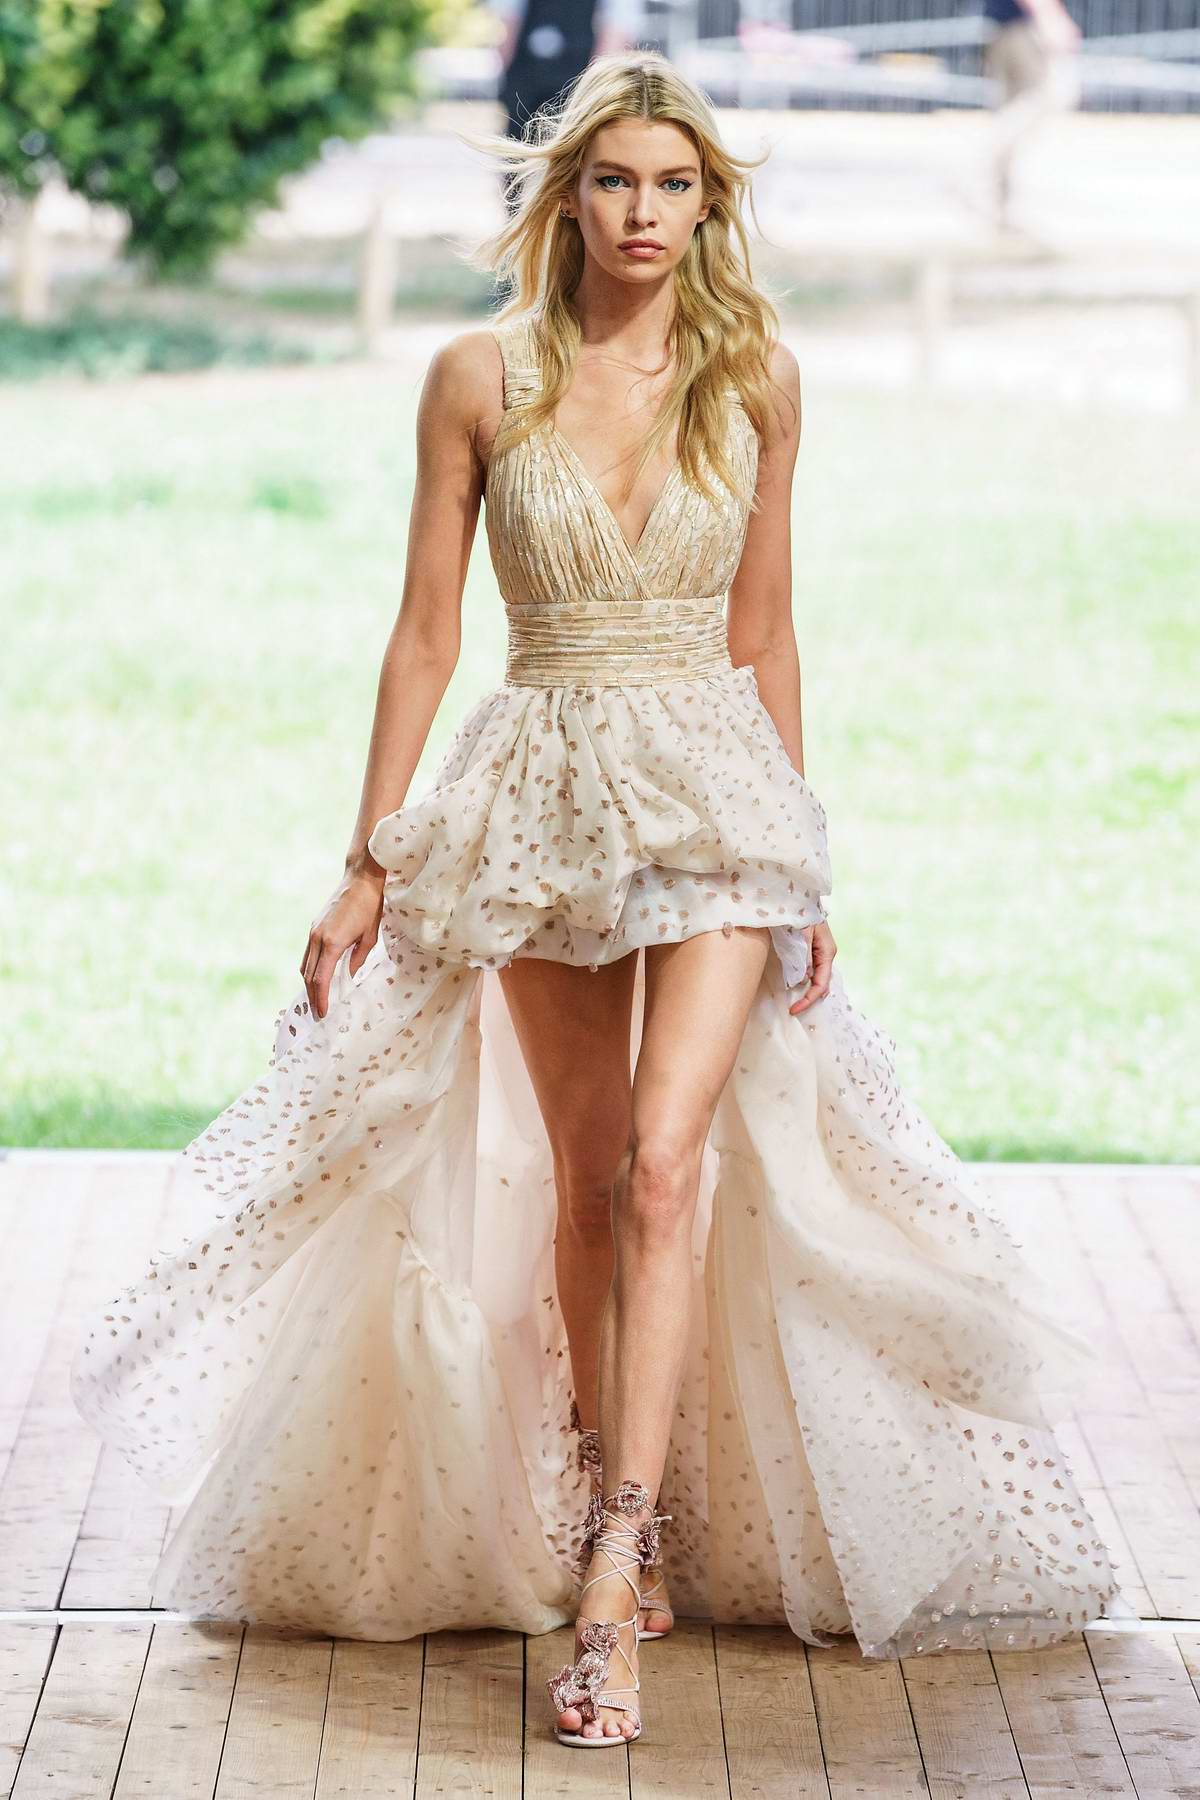 Stella Maxwell walks the runway at the Redemption show during Paris Haute Couture Fall/Winter 2019/20 in Paris, France